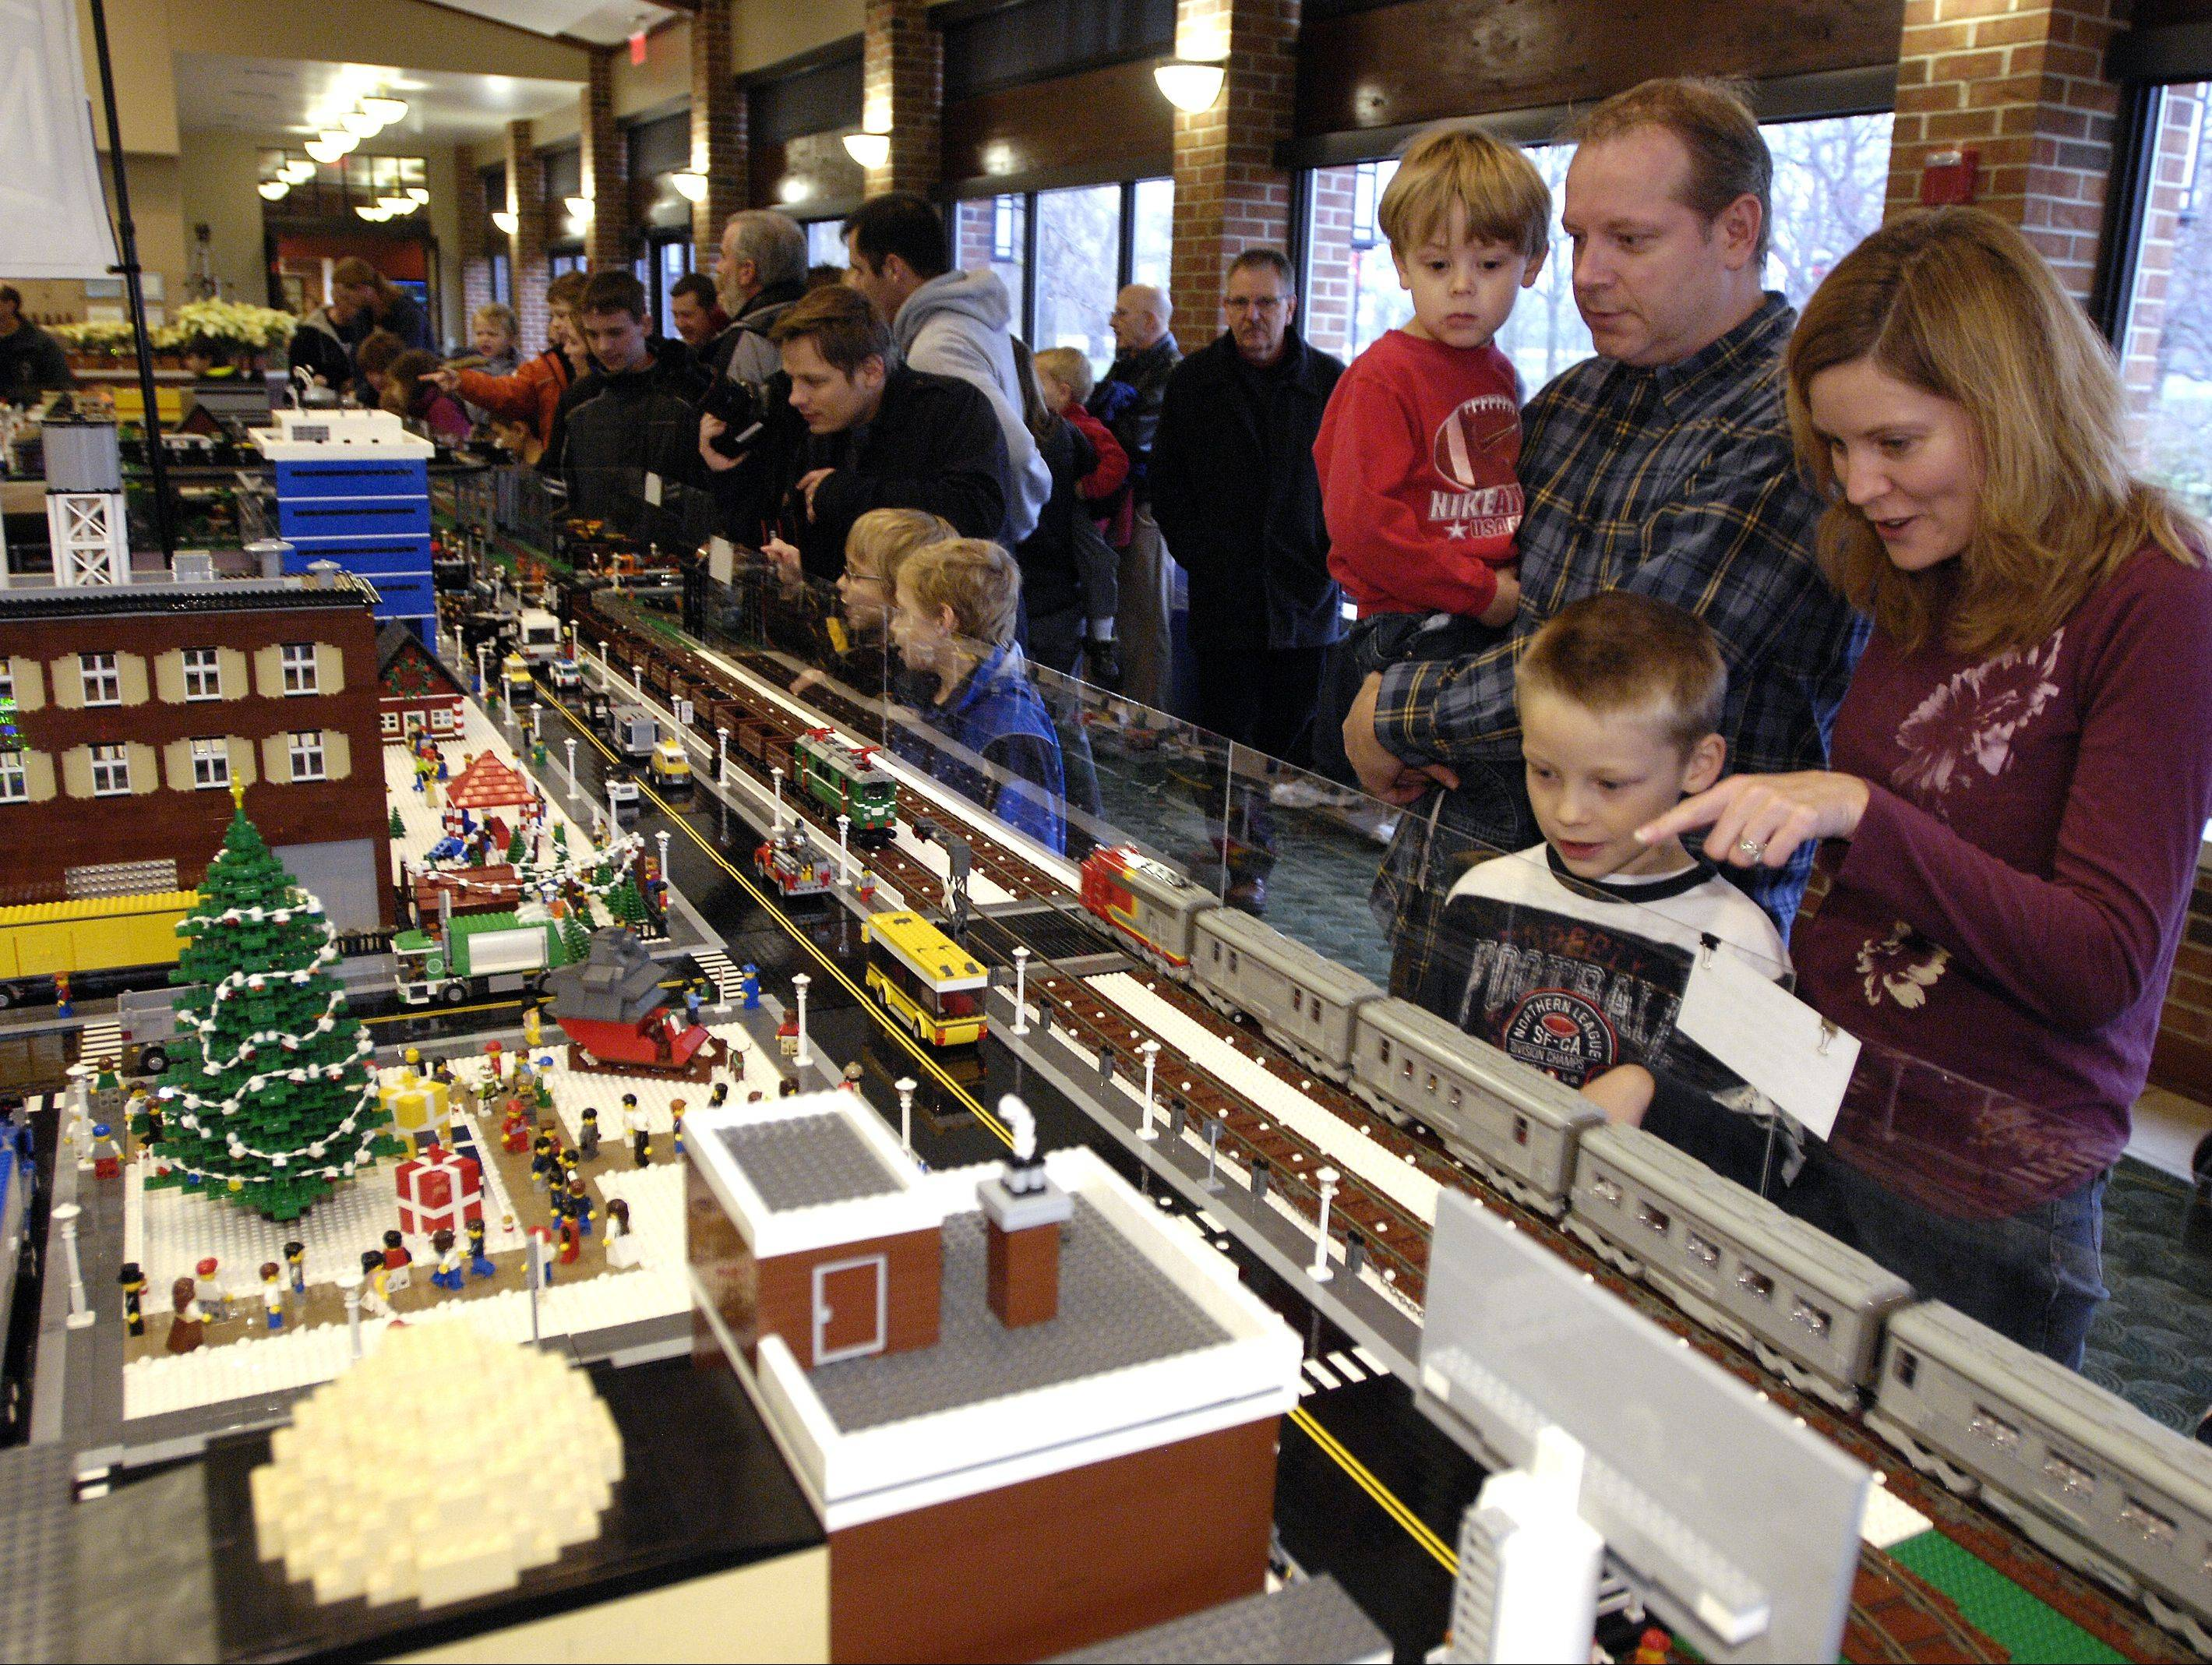 The Komro family, Tony, Becky, Wyatt, 4, and Kyle, 7, check out the displays Sunday at Cantigny Park's annual Holiday Lego Train Show in Wheaton.